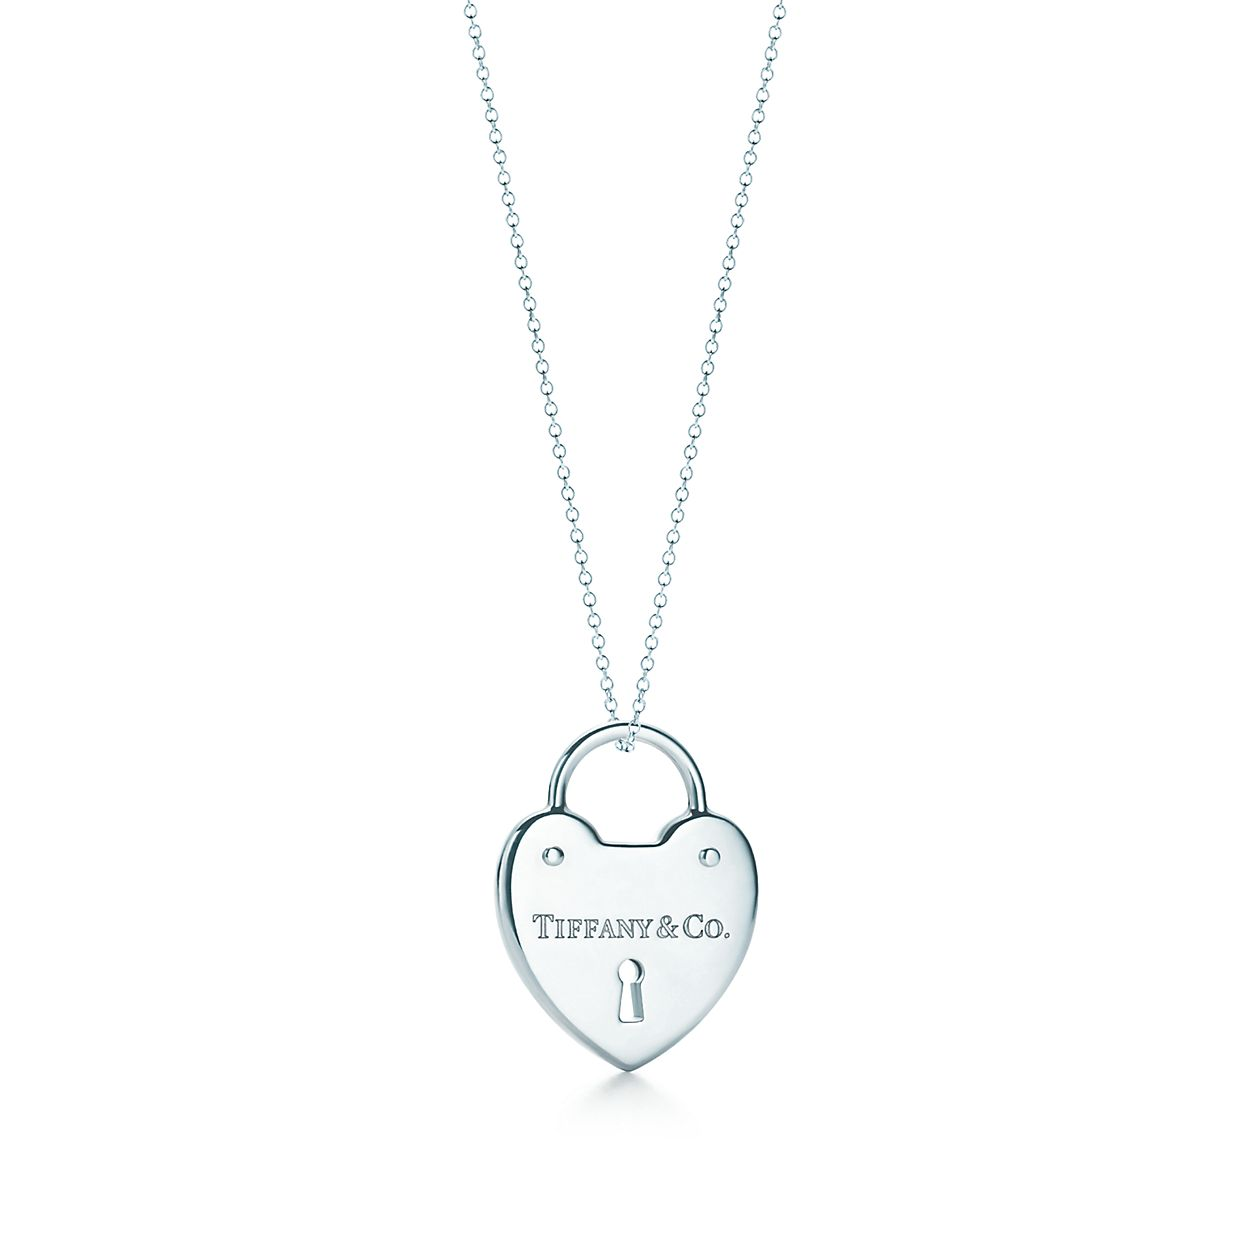 Tiffany locks heart lock pendant in sterling silver on a chain tiffany locksheart lock pendant tiffany locksheart lock pendant aloadofball Image collections